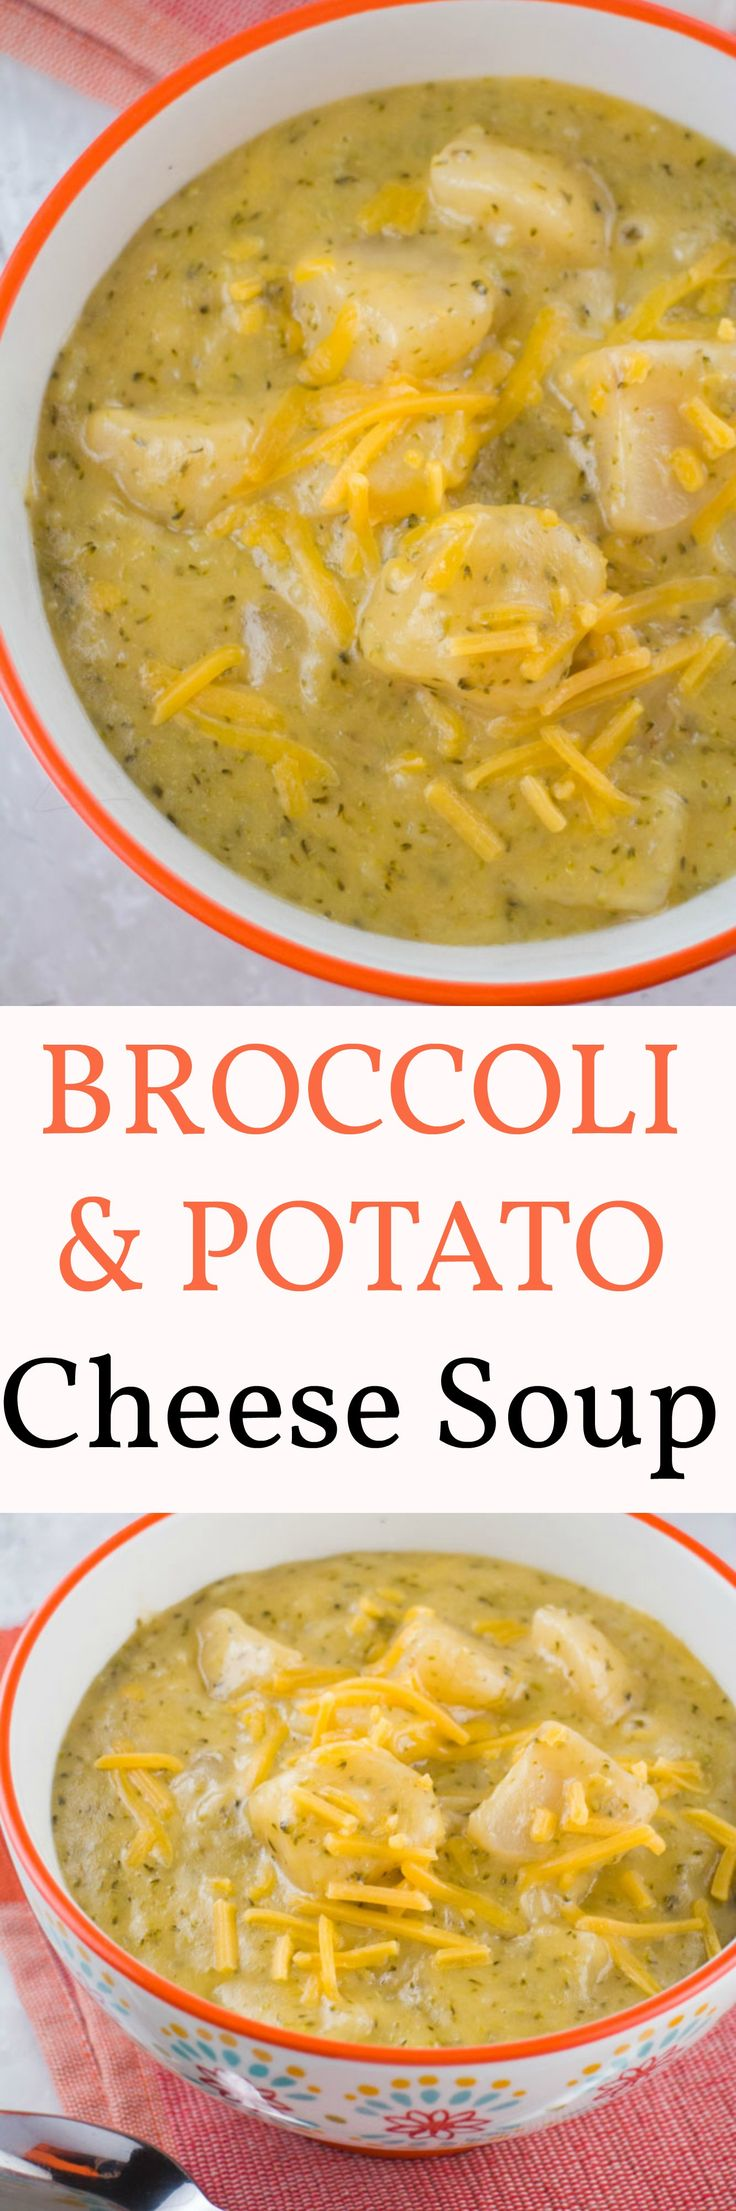 Make this Broccoli and Potato Cheese Soup for a comfort food dinner on a cold Winter night. The soup is cooked on high in a slow cooker for 4 hours. This soup is both delicious and easy to make!